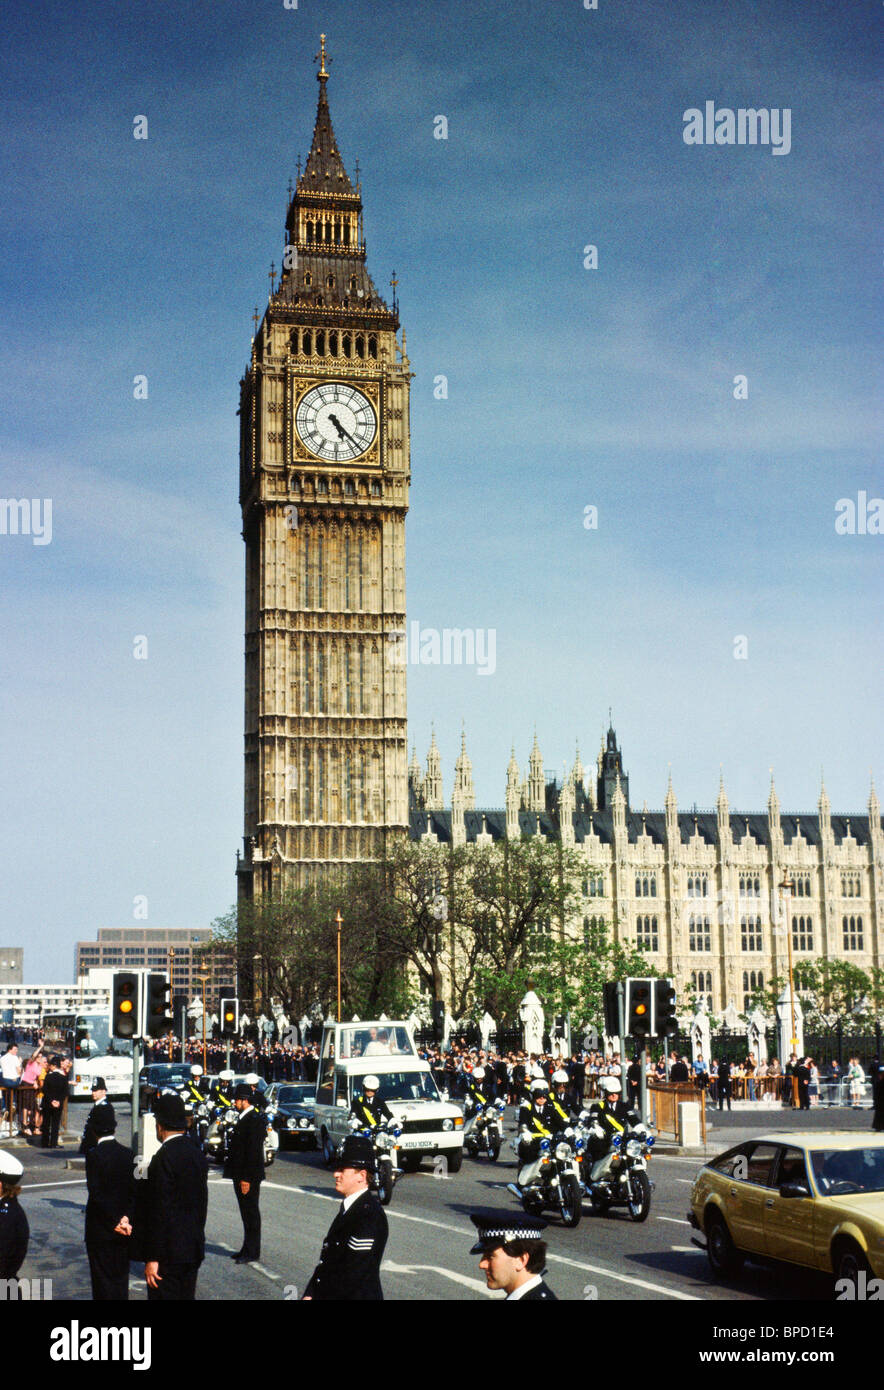 The Popemobile carries Pope John Paul II pass Big Ben and the Houses of Parliament during his visit to Britain Stock Photo